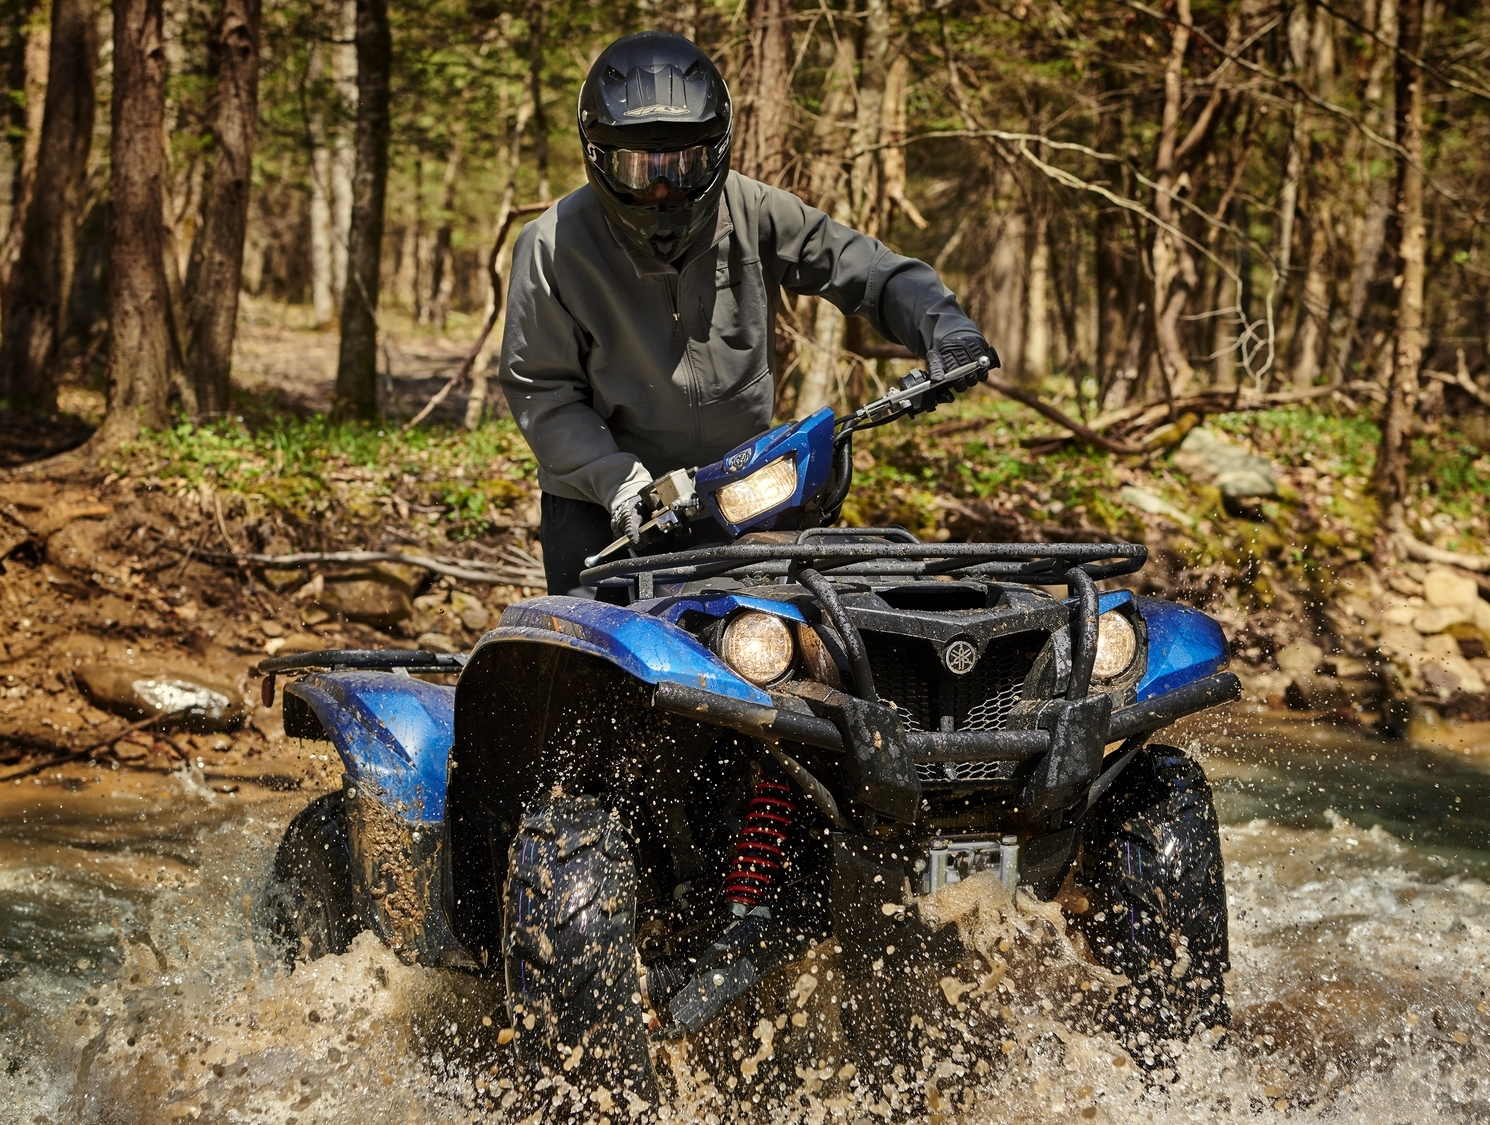 2019-Yamaha-YFM700FWBDSE-EU-Backcountry_